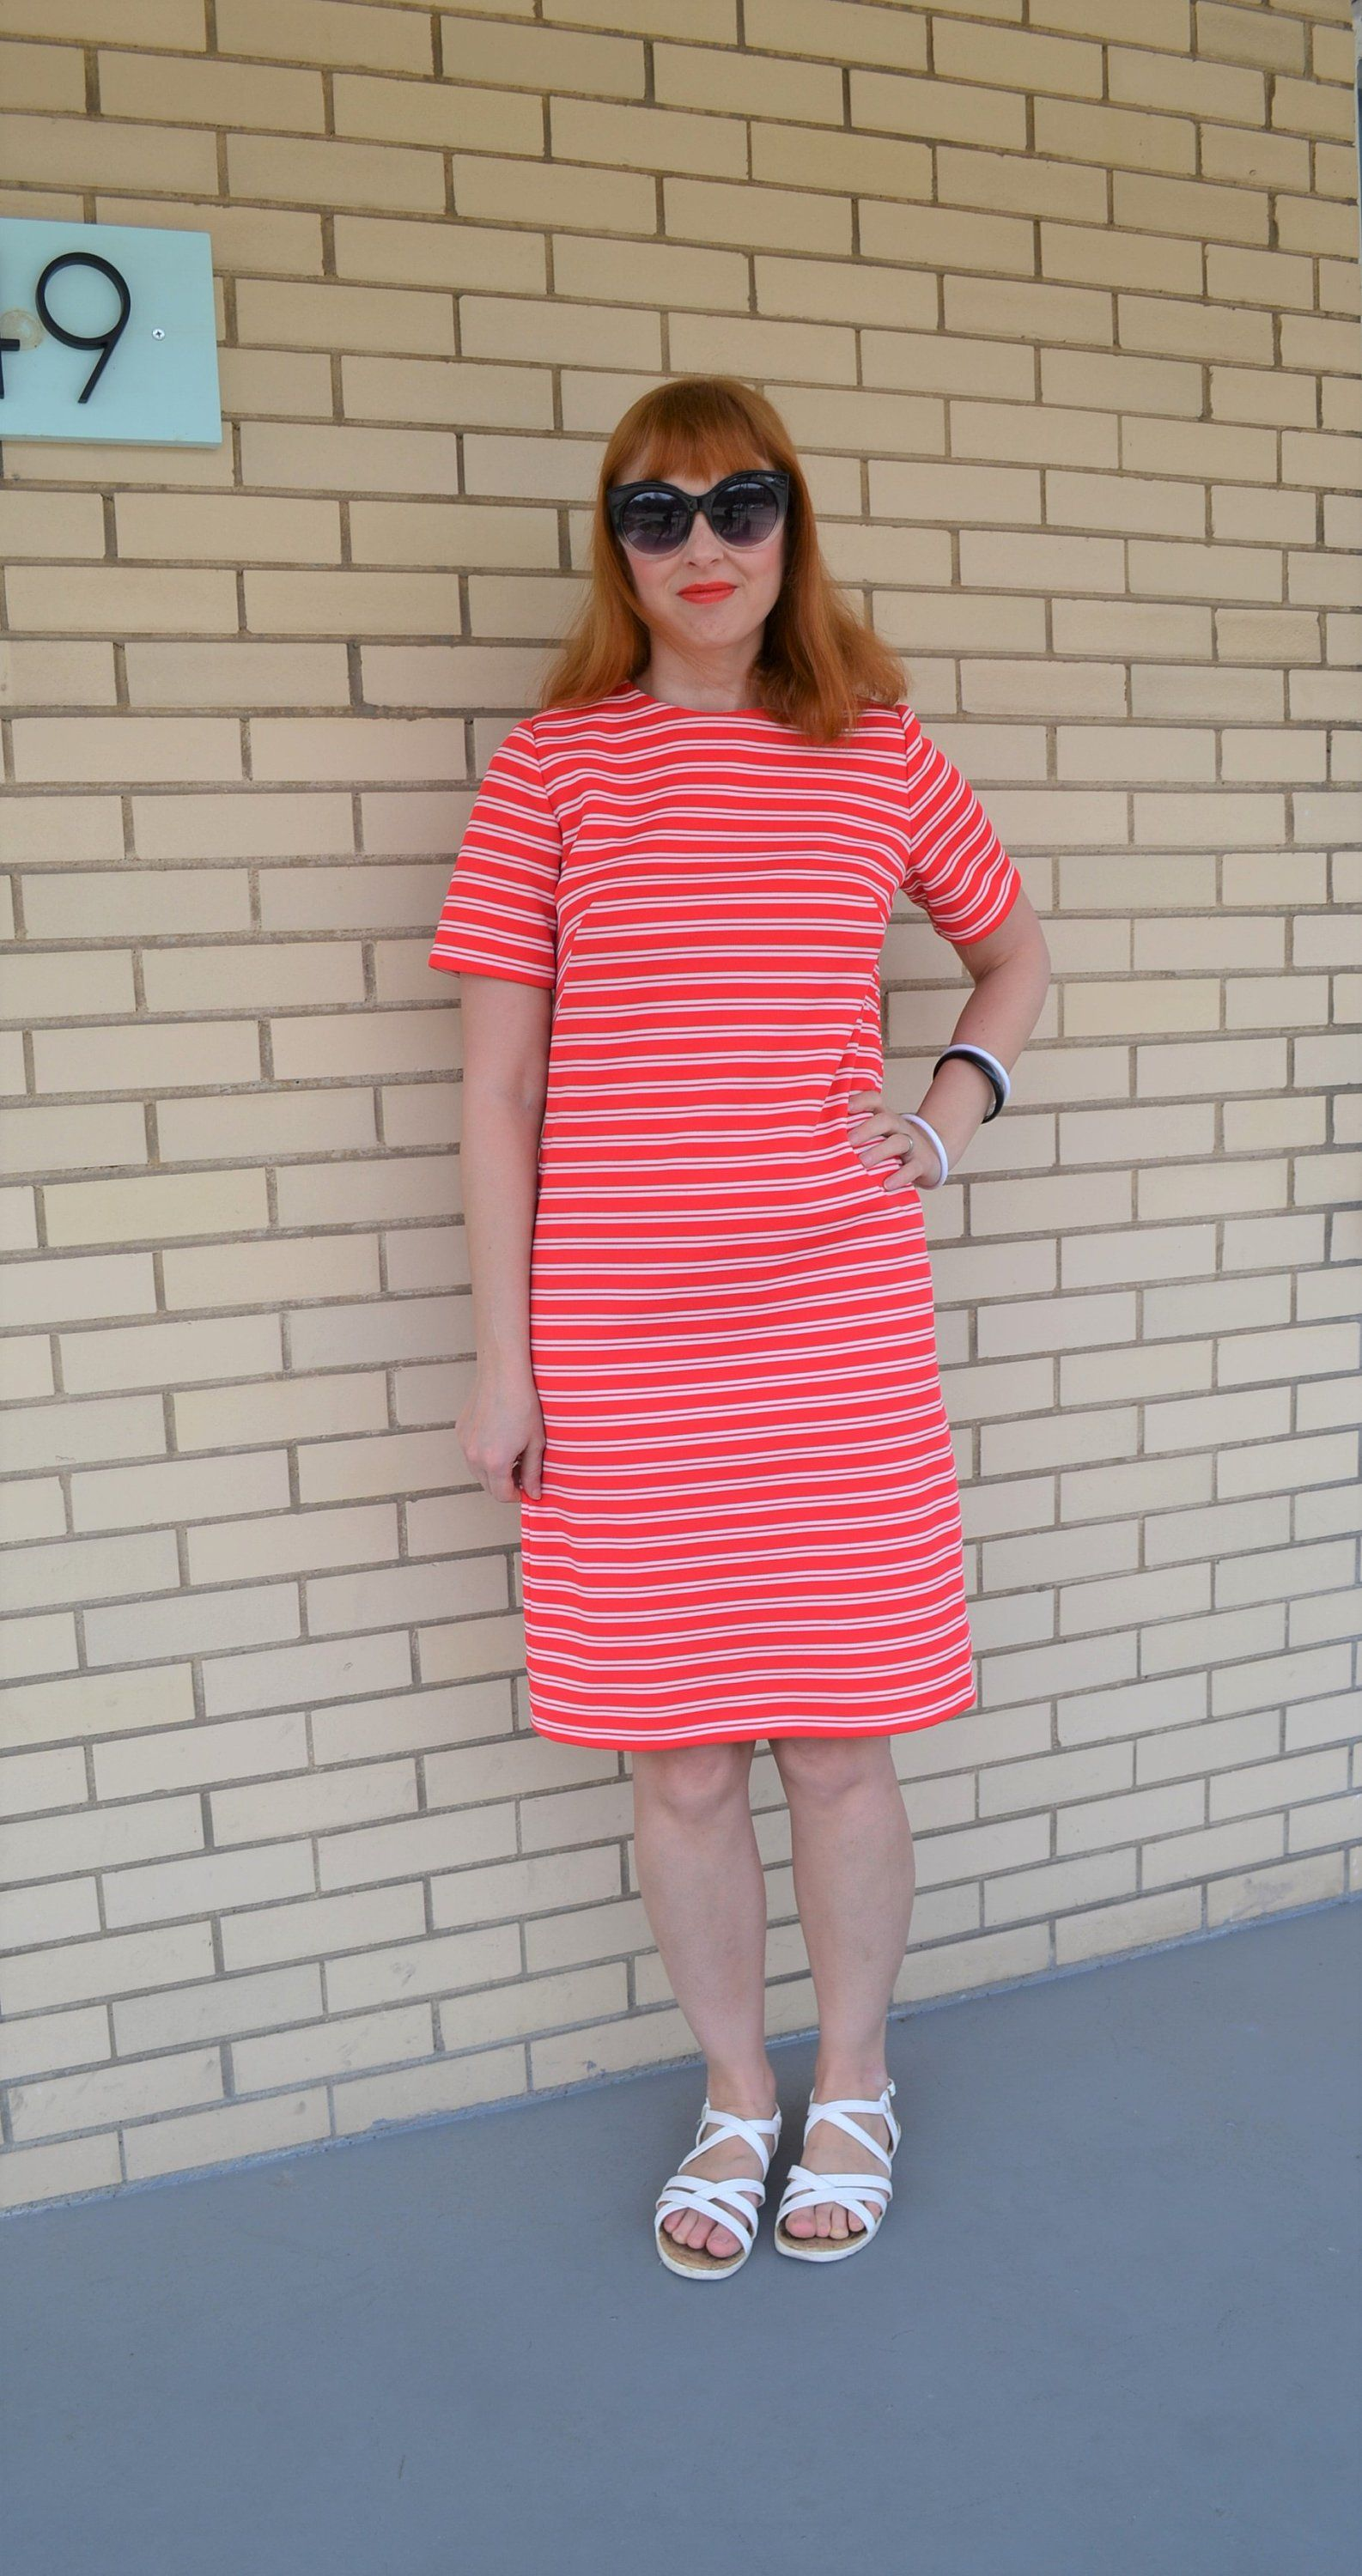 S a line dress with stripes size small red knee length dress